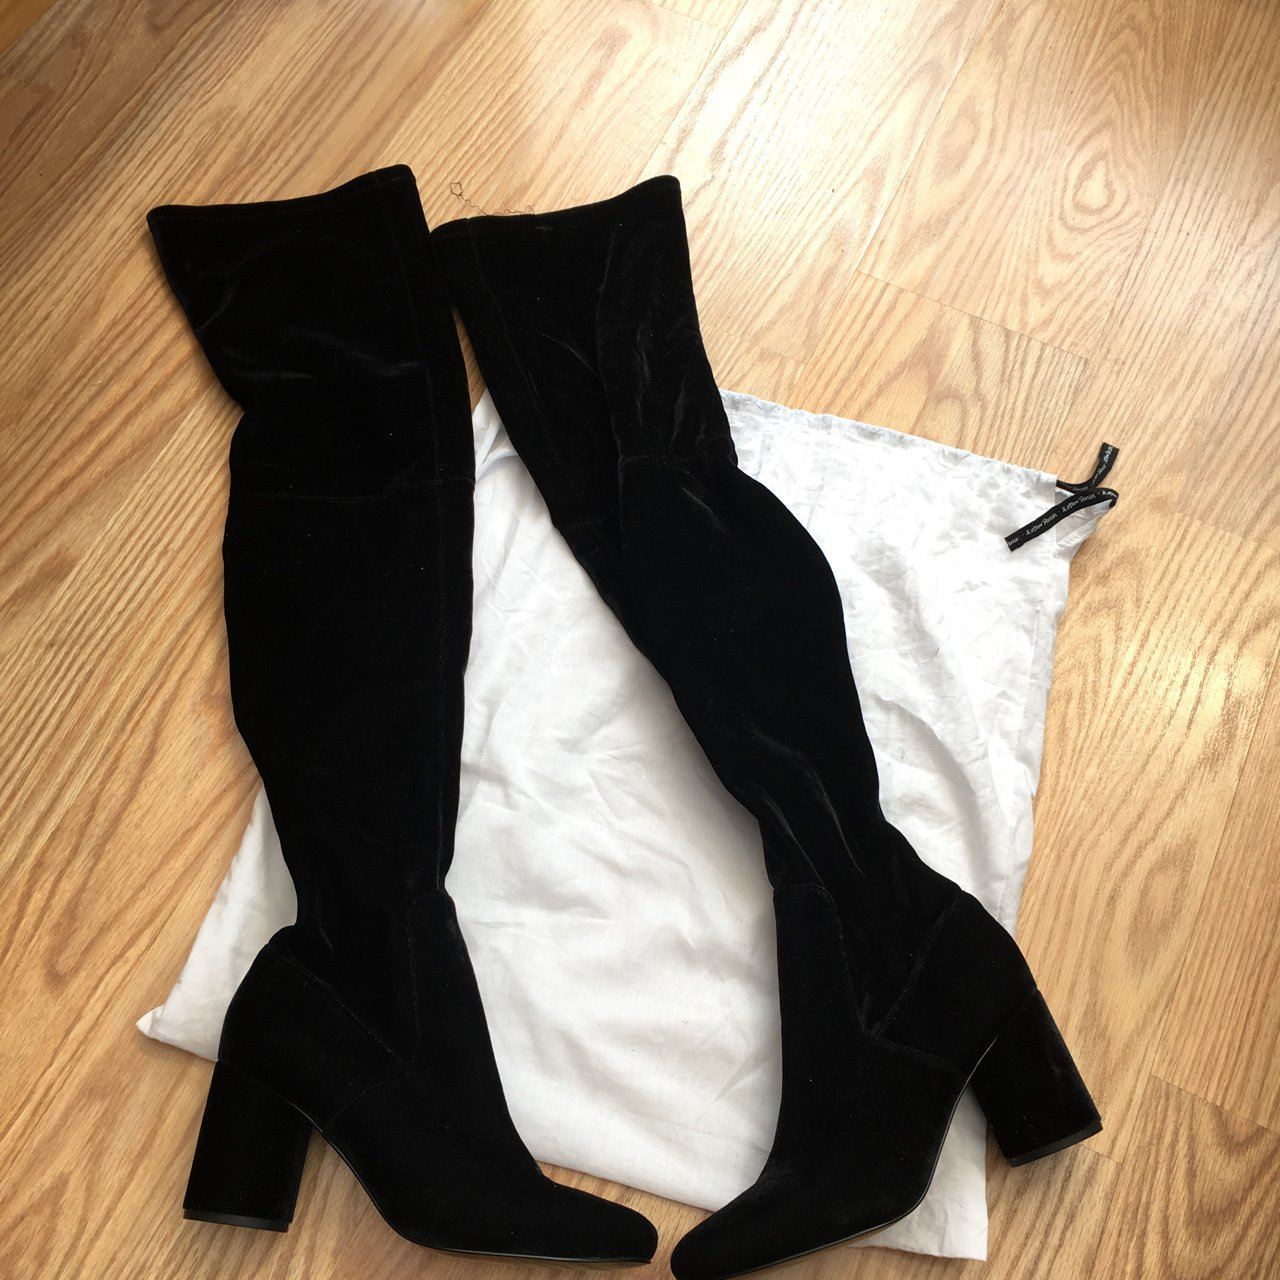 d4f1f8952a1 Black suede heeled knee high boots from   other stories. due - Depop